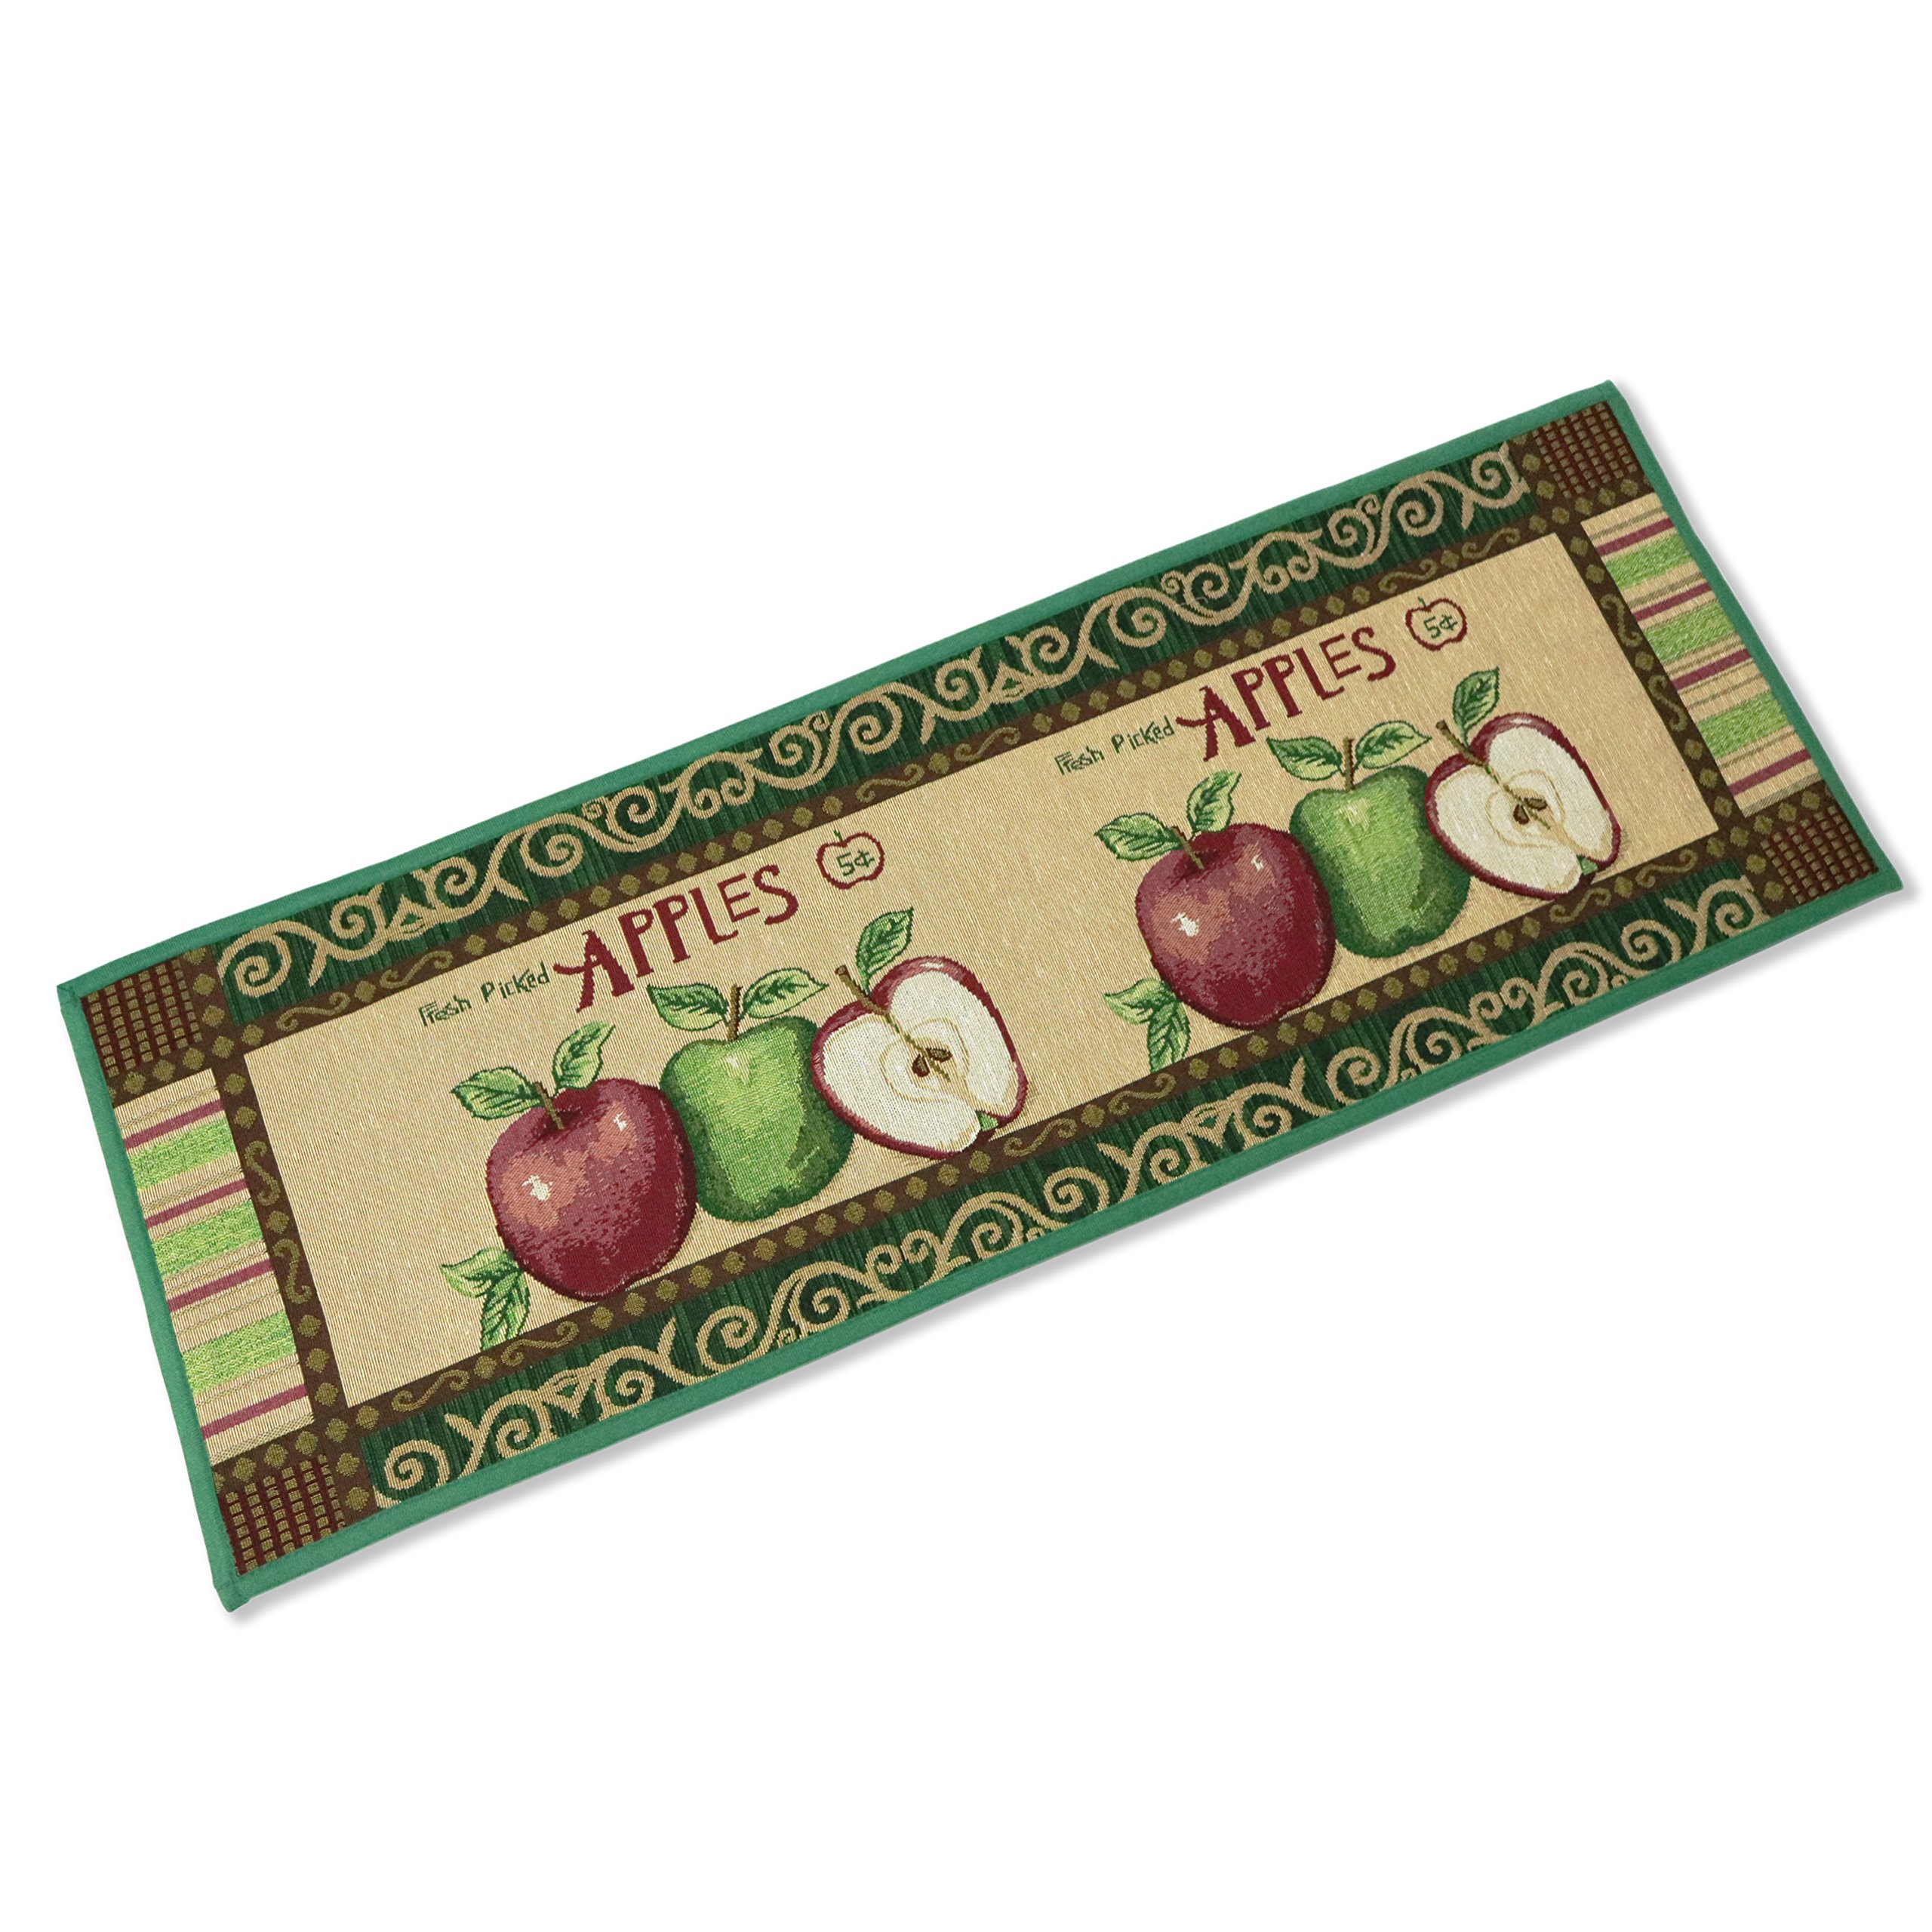 Kitchen Rugs Apple Non Slip Kitchen Mat Extra Long Runner Area Rug for Kitchen Jacquard Bathroom Carpet Printed Floor Rugs,18 x 47 Inches